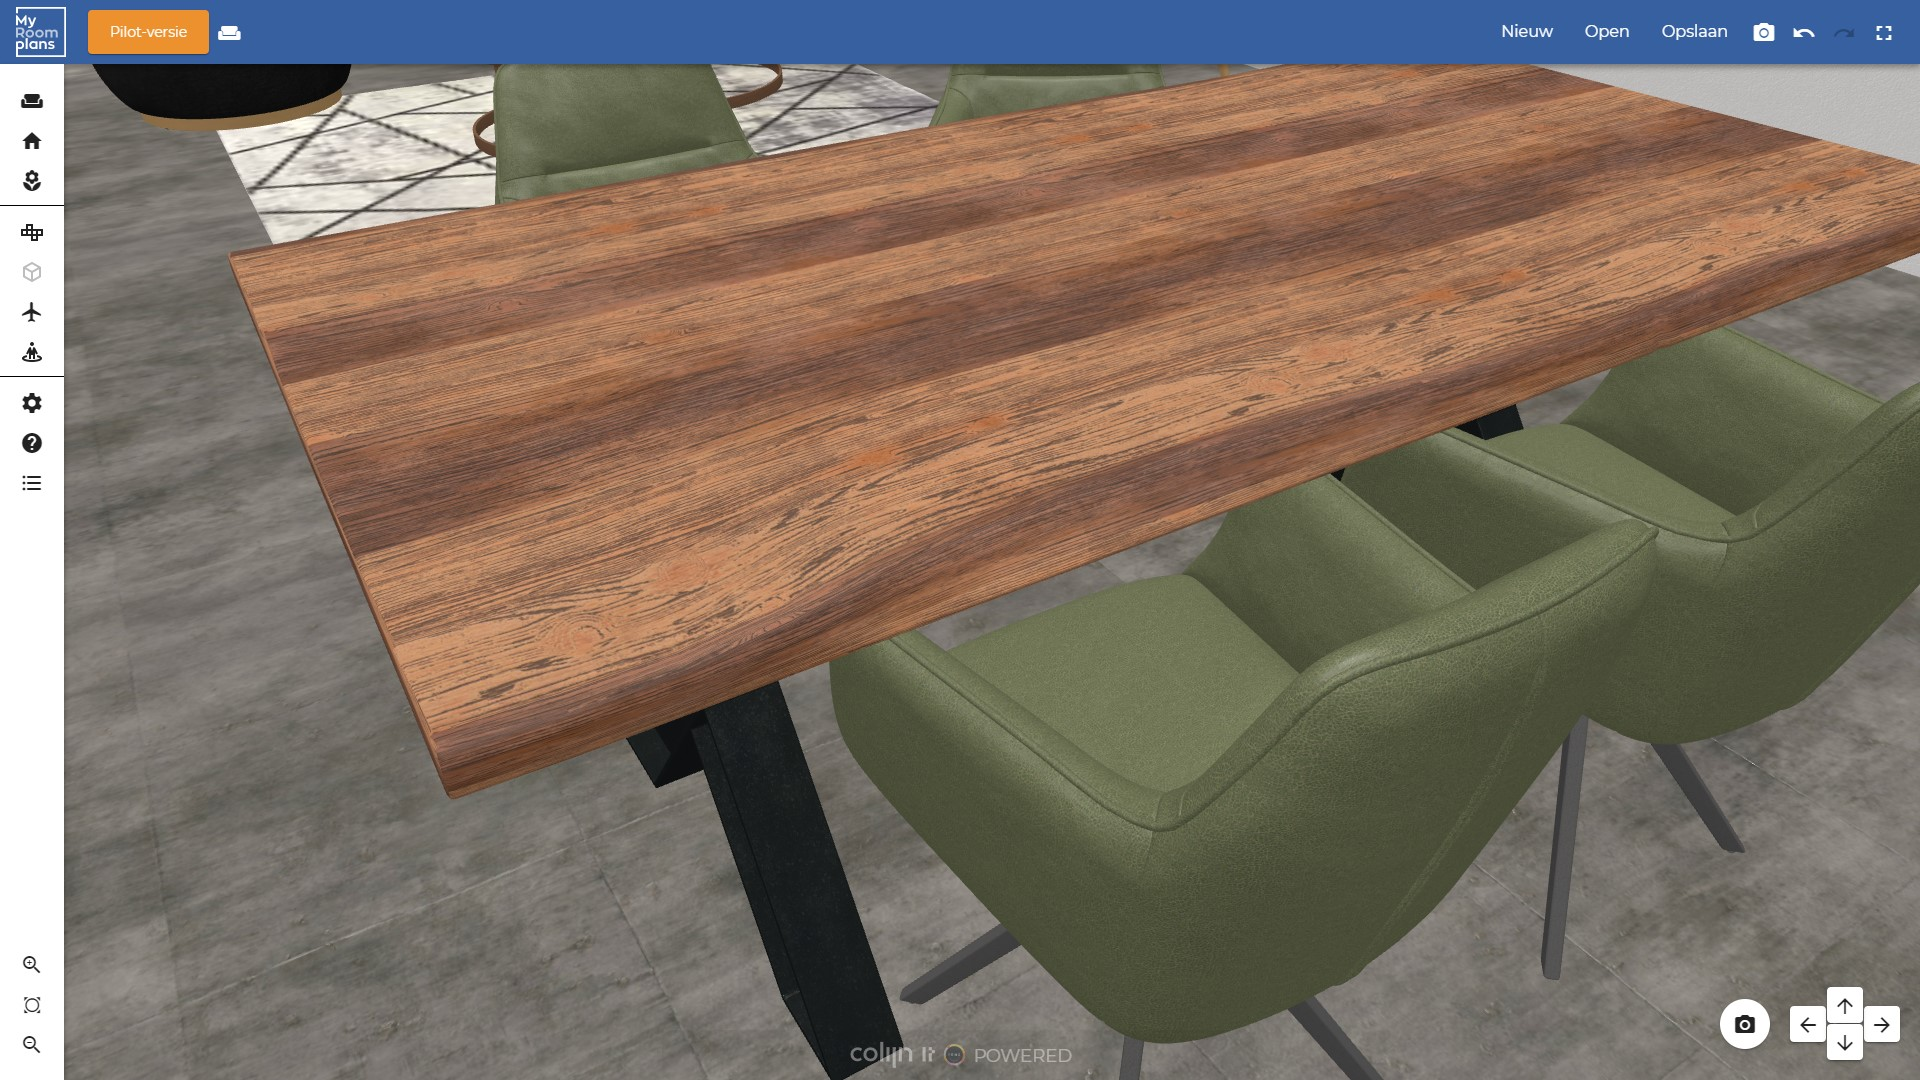 3D roomplanner with roomscene renders of configurable products